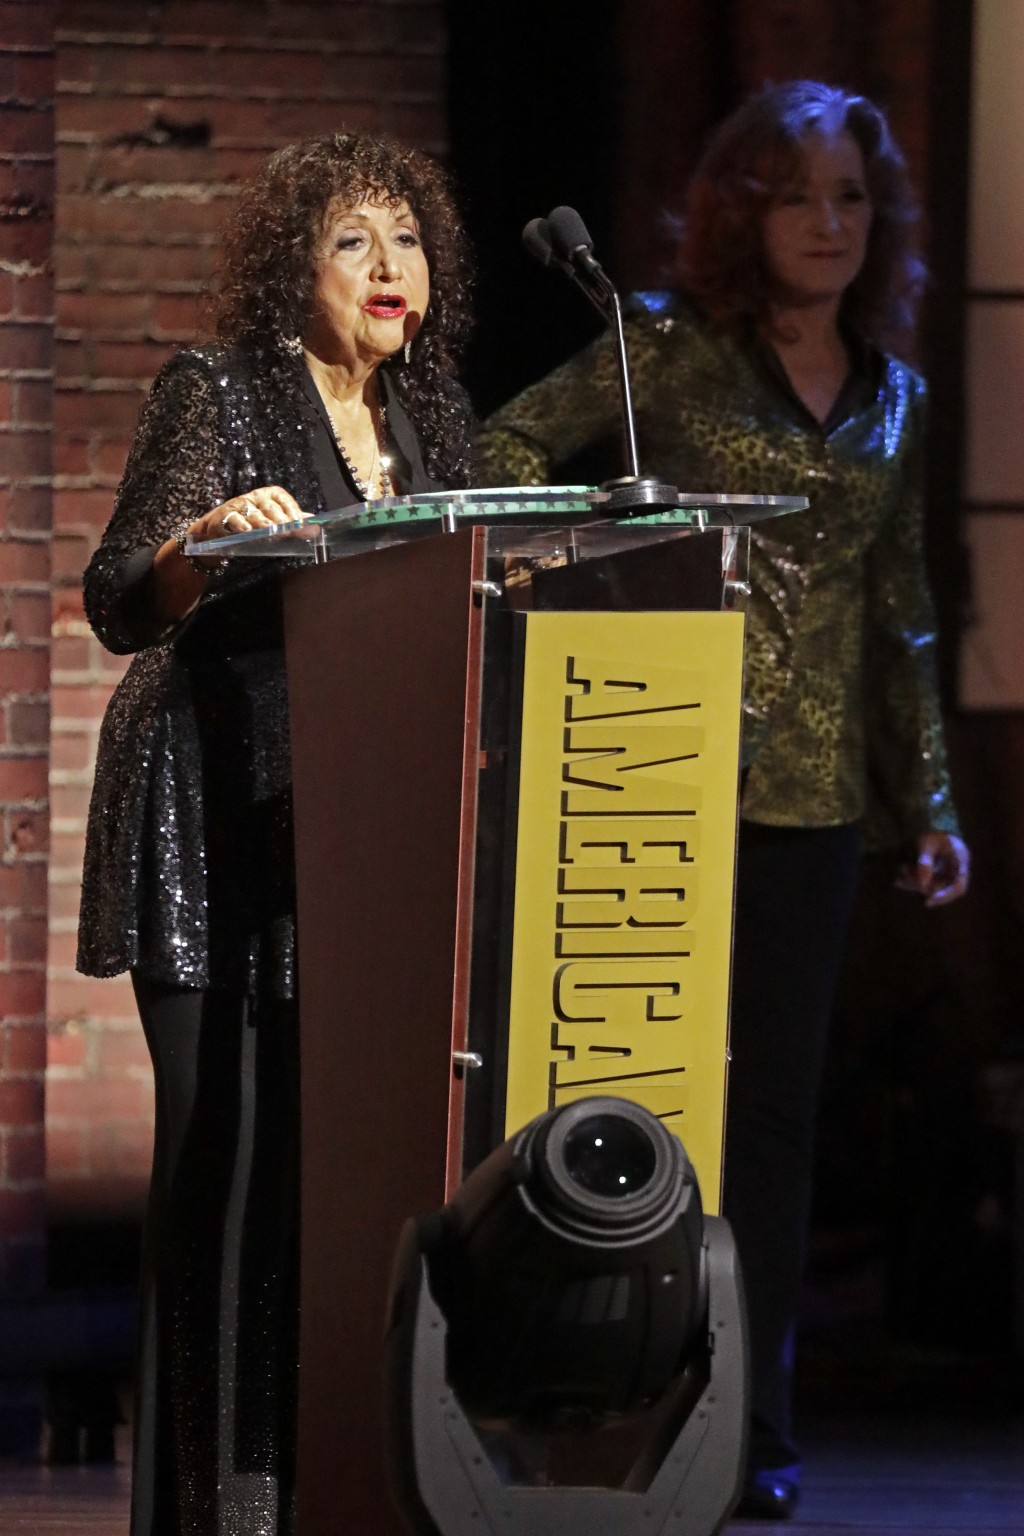 Maria Muldaur accepts the Trailblazer Award after it was presented to her by Bonnie Raitt, right, at the Americana Honors & Awards show Wednesday, Sep